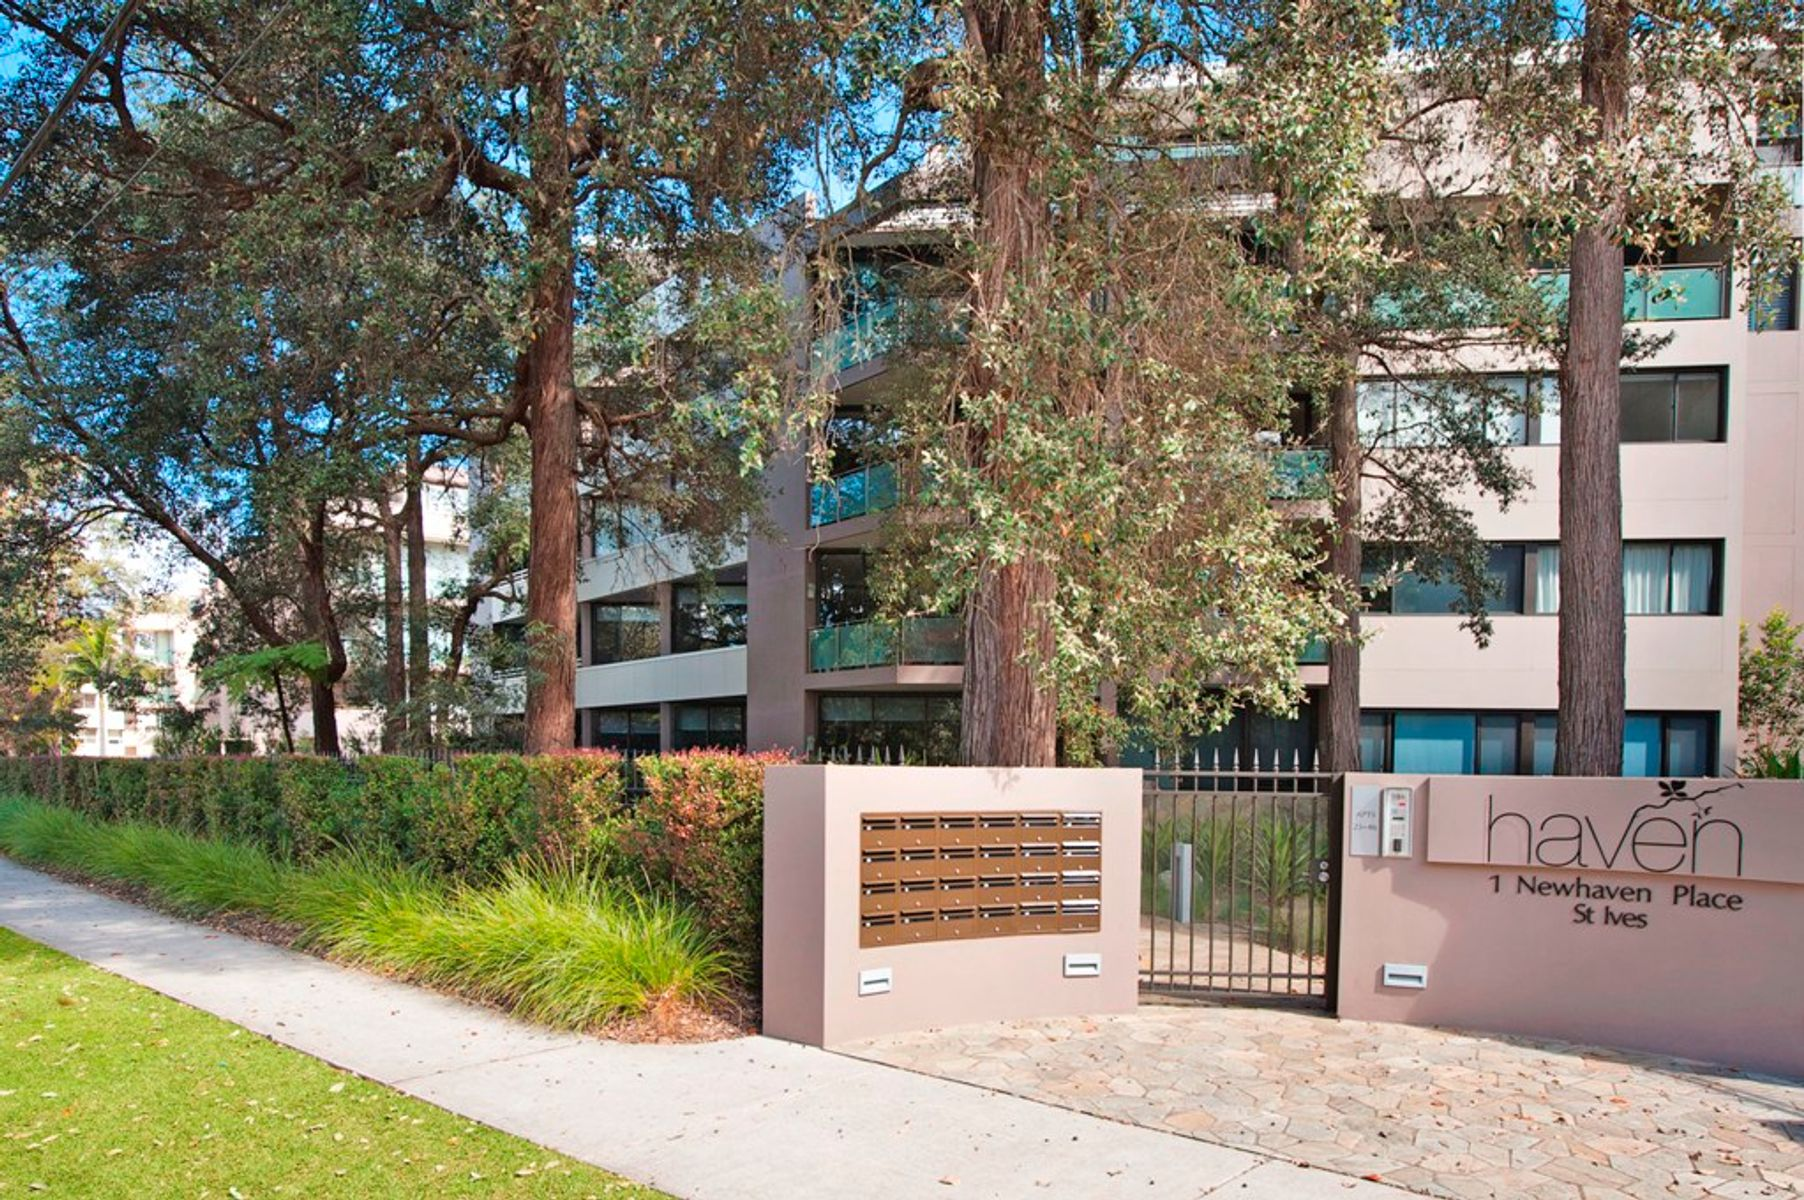 6/1 Newhaven Place, St Ives, NSW 2073